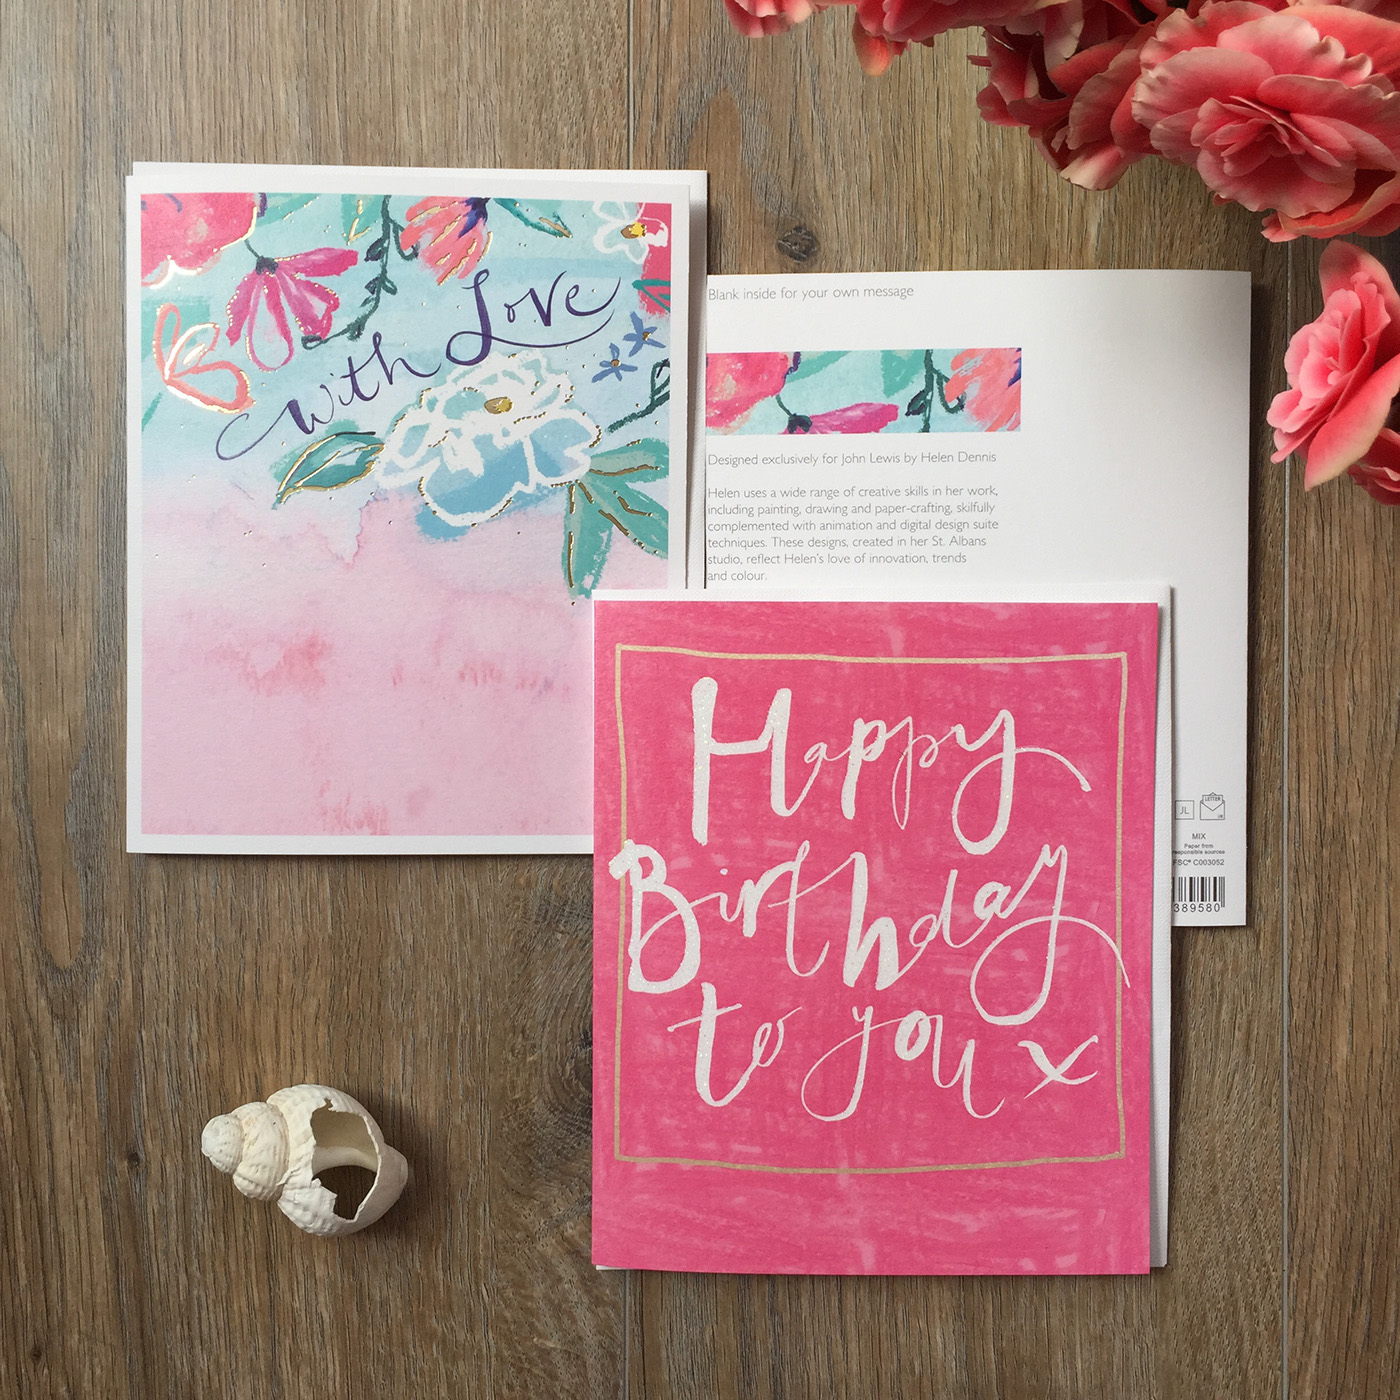 greeting cards designed exclusively for john lewis on behance